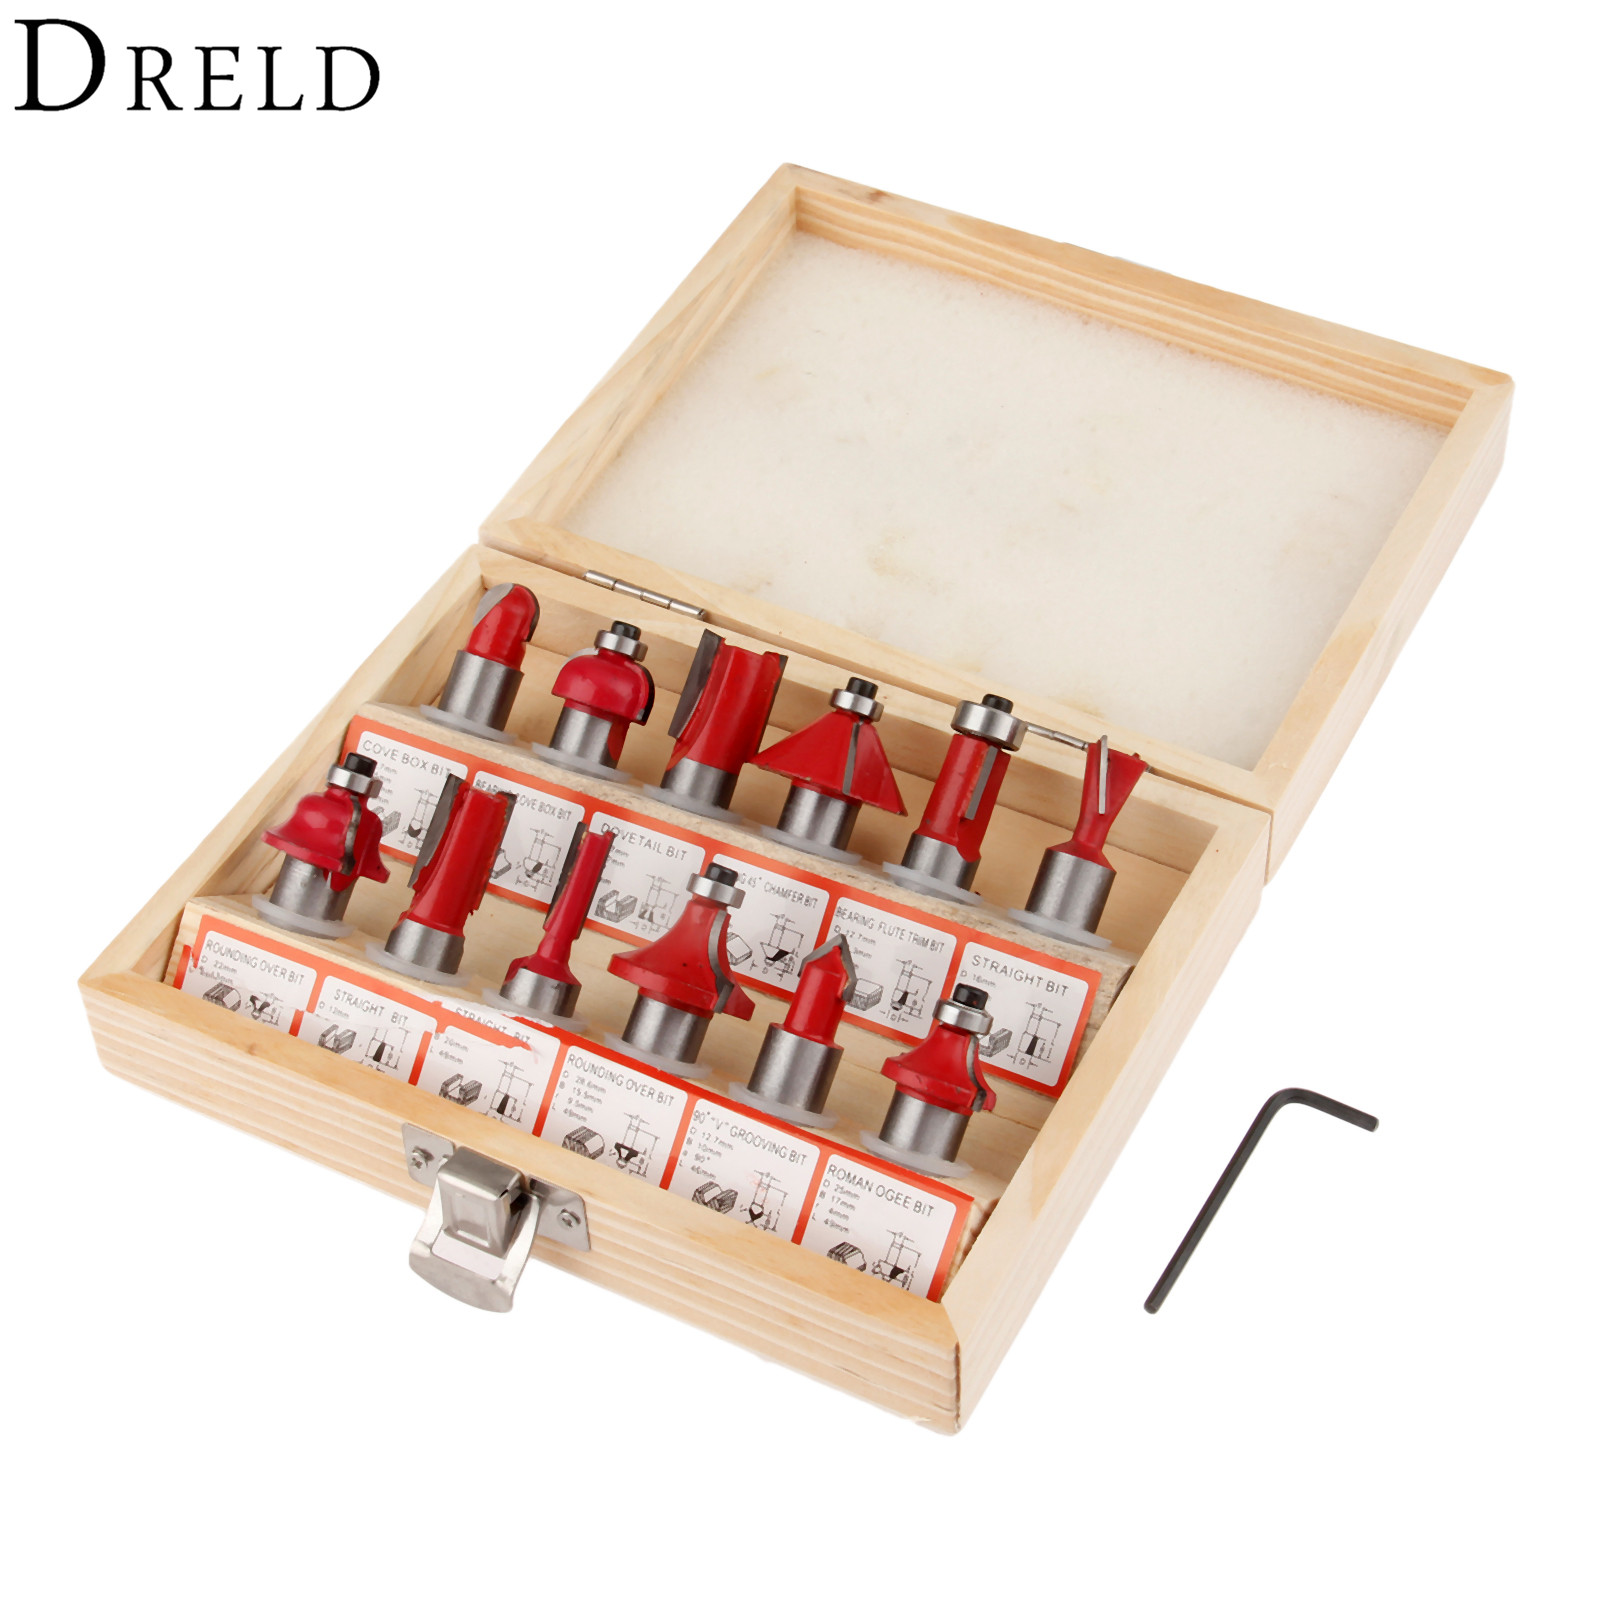 DRELD 12Pcs  1/2 Inch (12.7mm) Shank Flush Trim Wood Router Bit Wood Milling Cutter DIY Woodworking Tools with Wooden Case high grade carbide alloy 1 2 shank 2 1 4 dia bottom cleaning router bit woodworking milling cutter for mdf wood 55mm mayitr